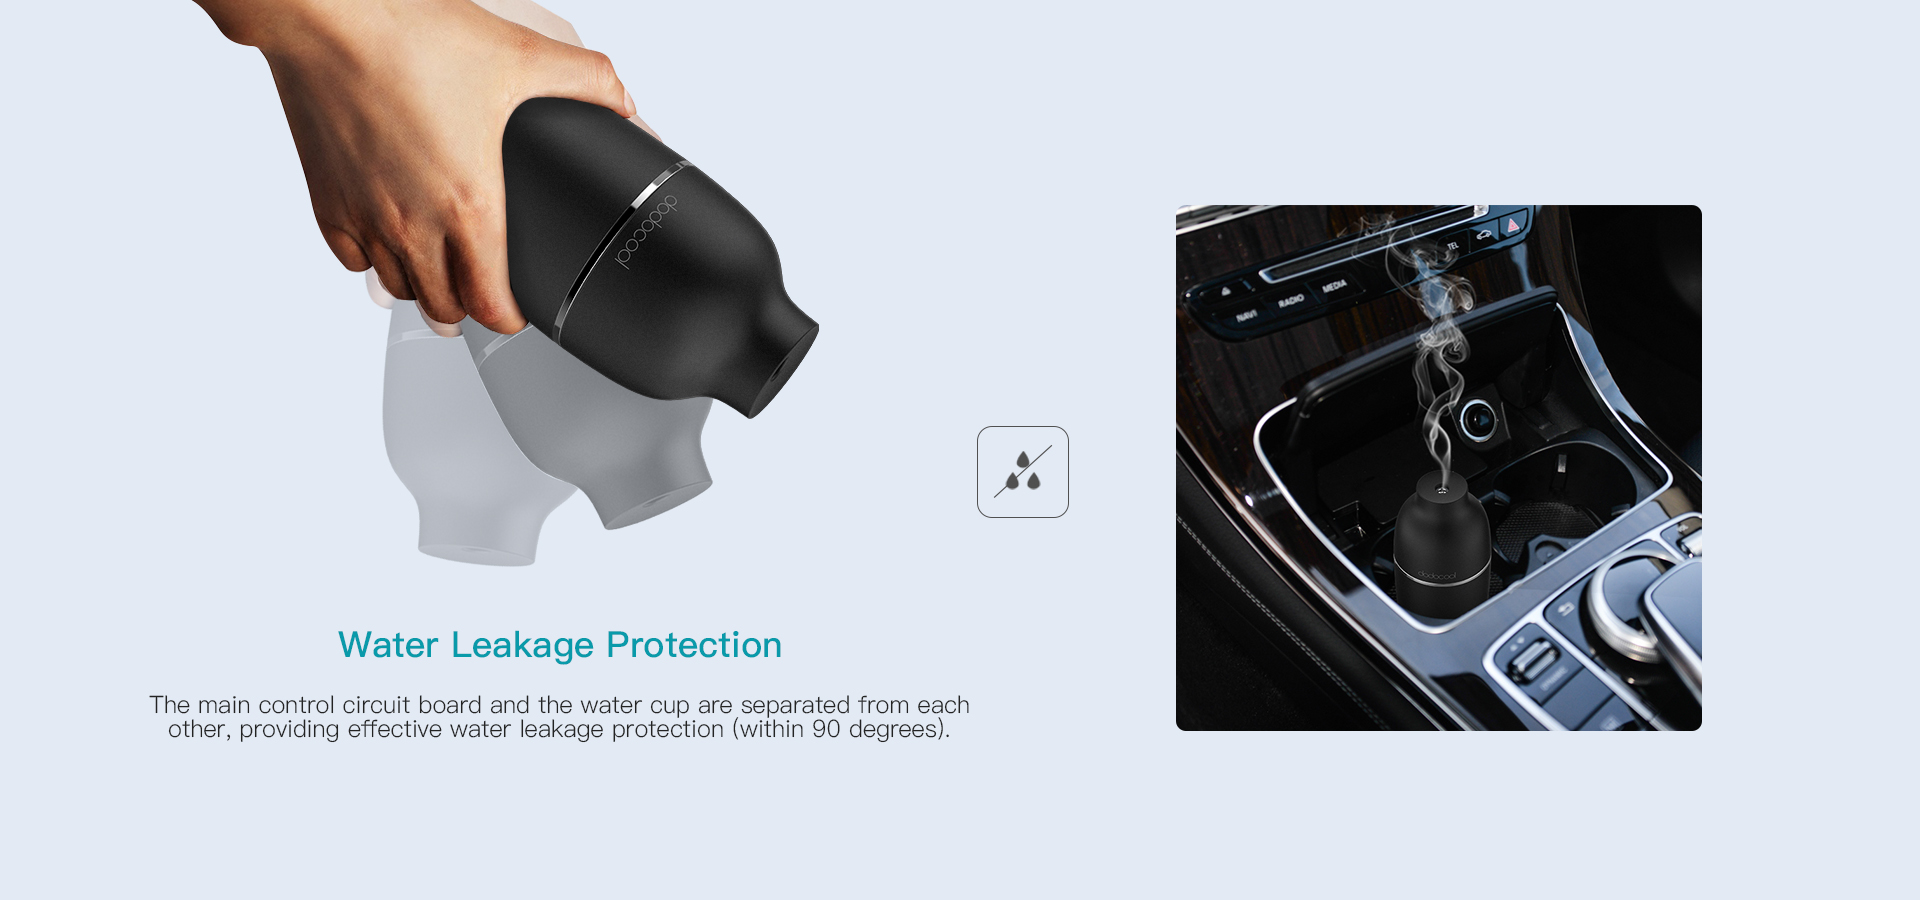 Mini Portable 180ml Ultrasonic Cool Mist Humidifier Fogger Circuit Dodocool Air Is A Bottle Shaped With Lightweight And Compact Design Technology It Envelops Your